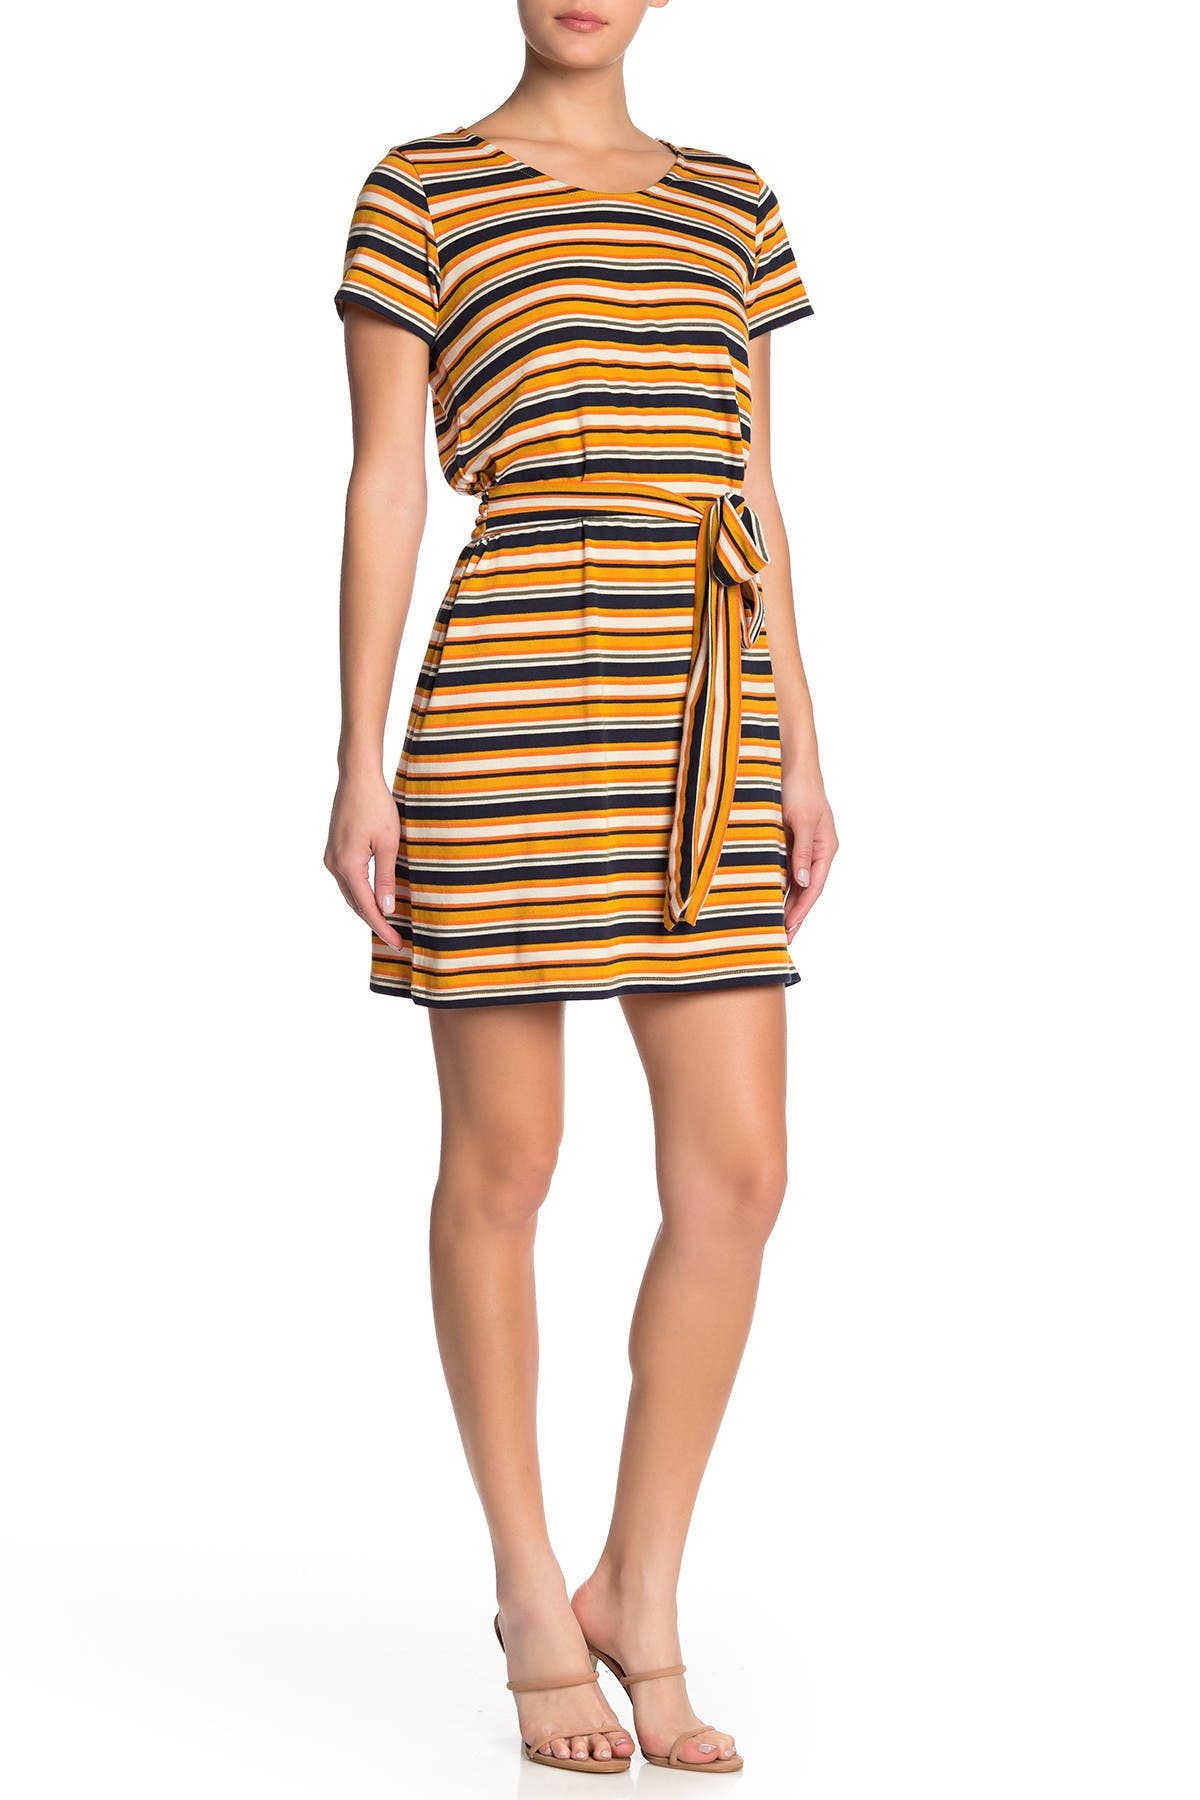 Image of Cotton On Bella Tie Front T-Shirt Dress